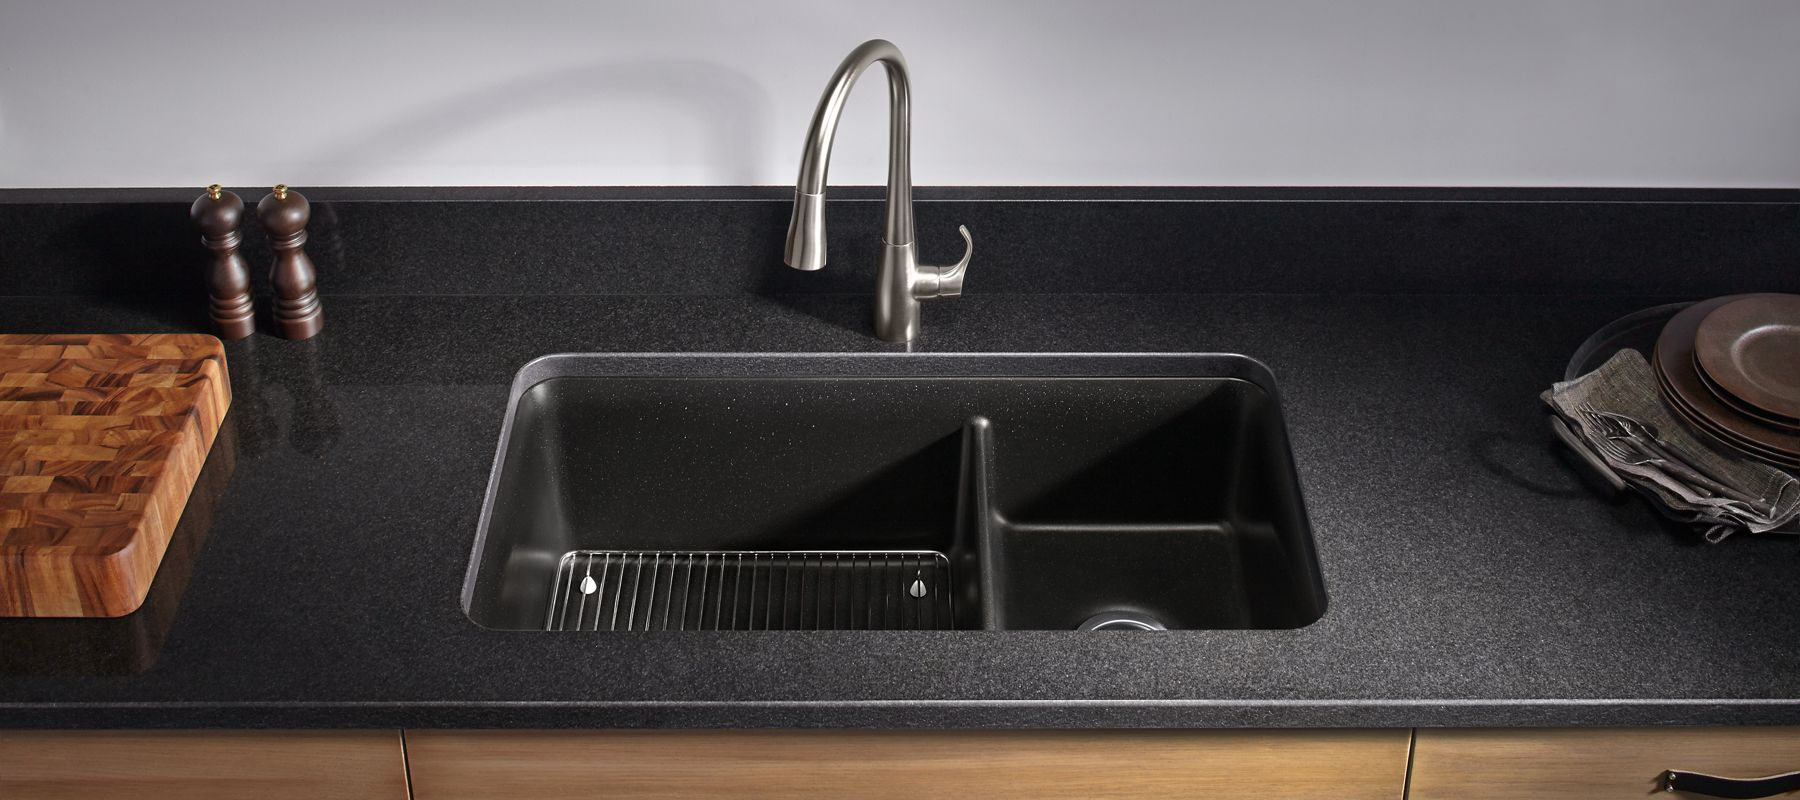 koehler kitchen sinks neoroc kitchen sinks 3595